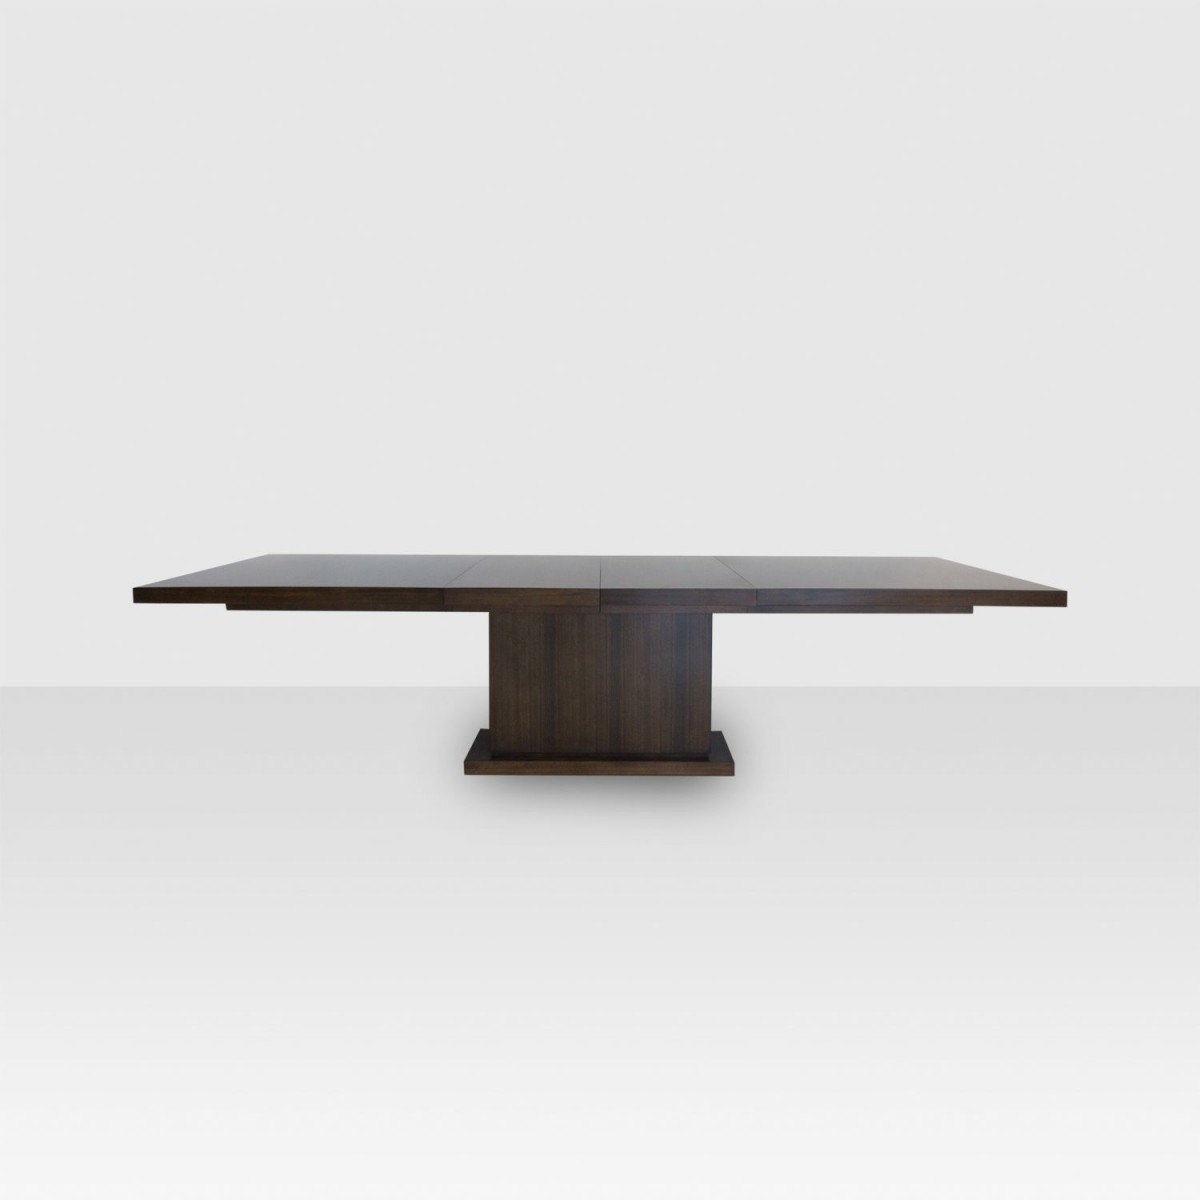 Michael Weiss Bradford Dining Table – Elte In Best And Newest Bradford Dining Tables (View 4 of 20)